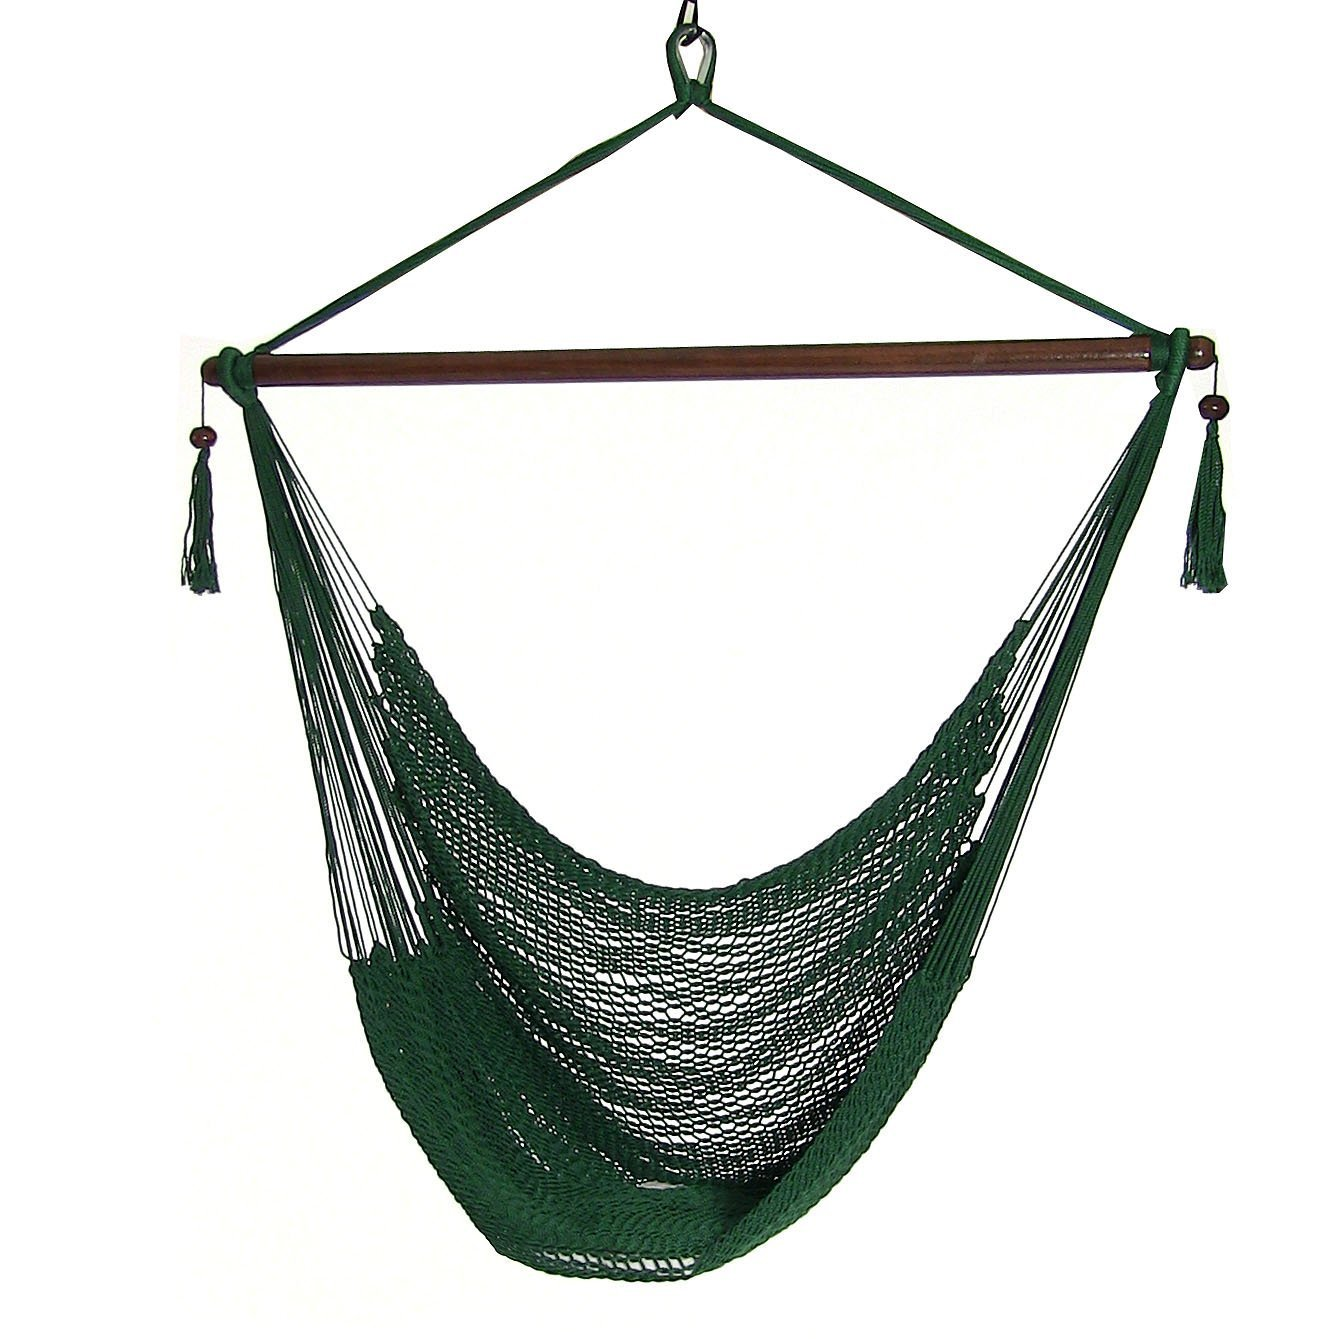 Sunnydaze Hanging Rope Hammock Chair Swing, Extra Large Caribbean, Green Indoor Outdoor Patio, Yard, Porch Bedroom